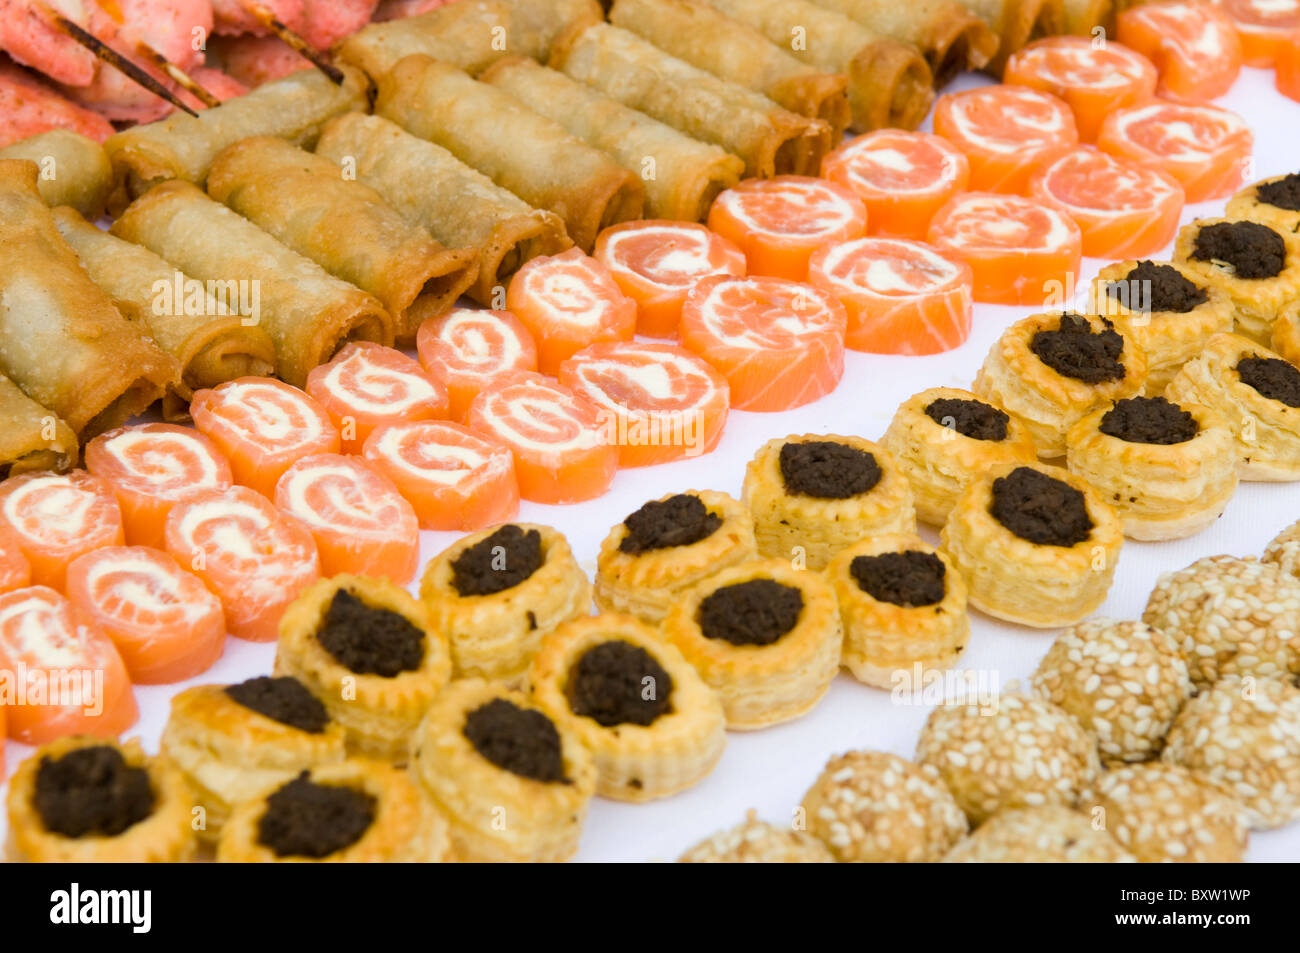 A variety of party canapés in rows on a white tray - Stock Image